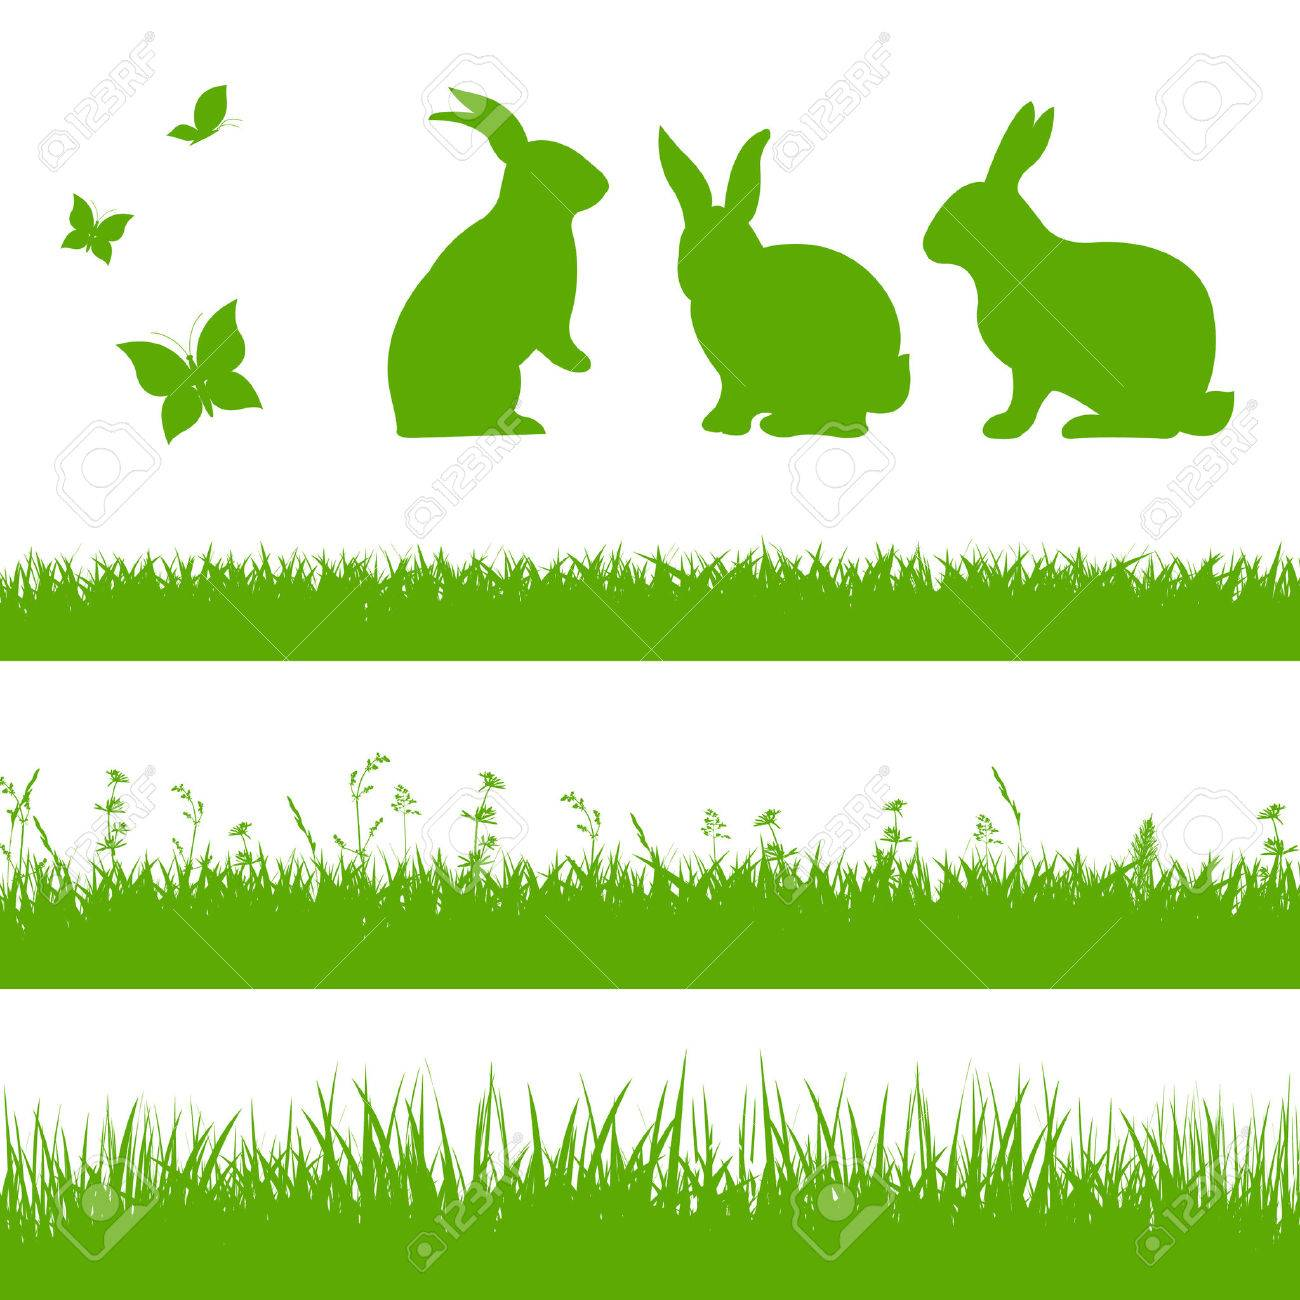 Spring Grass Border With Rabbits - 53039140